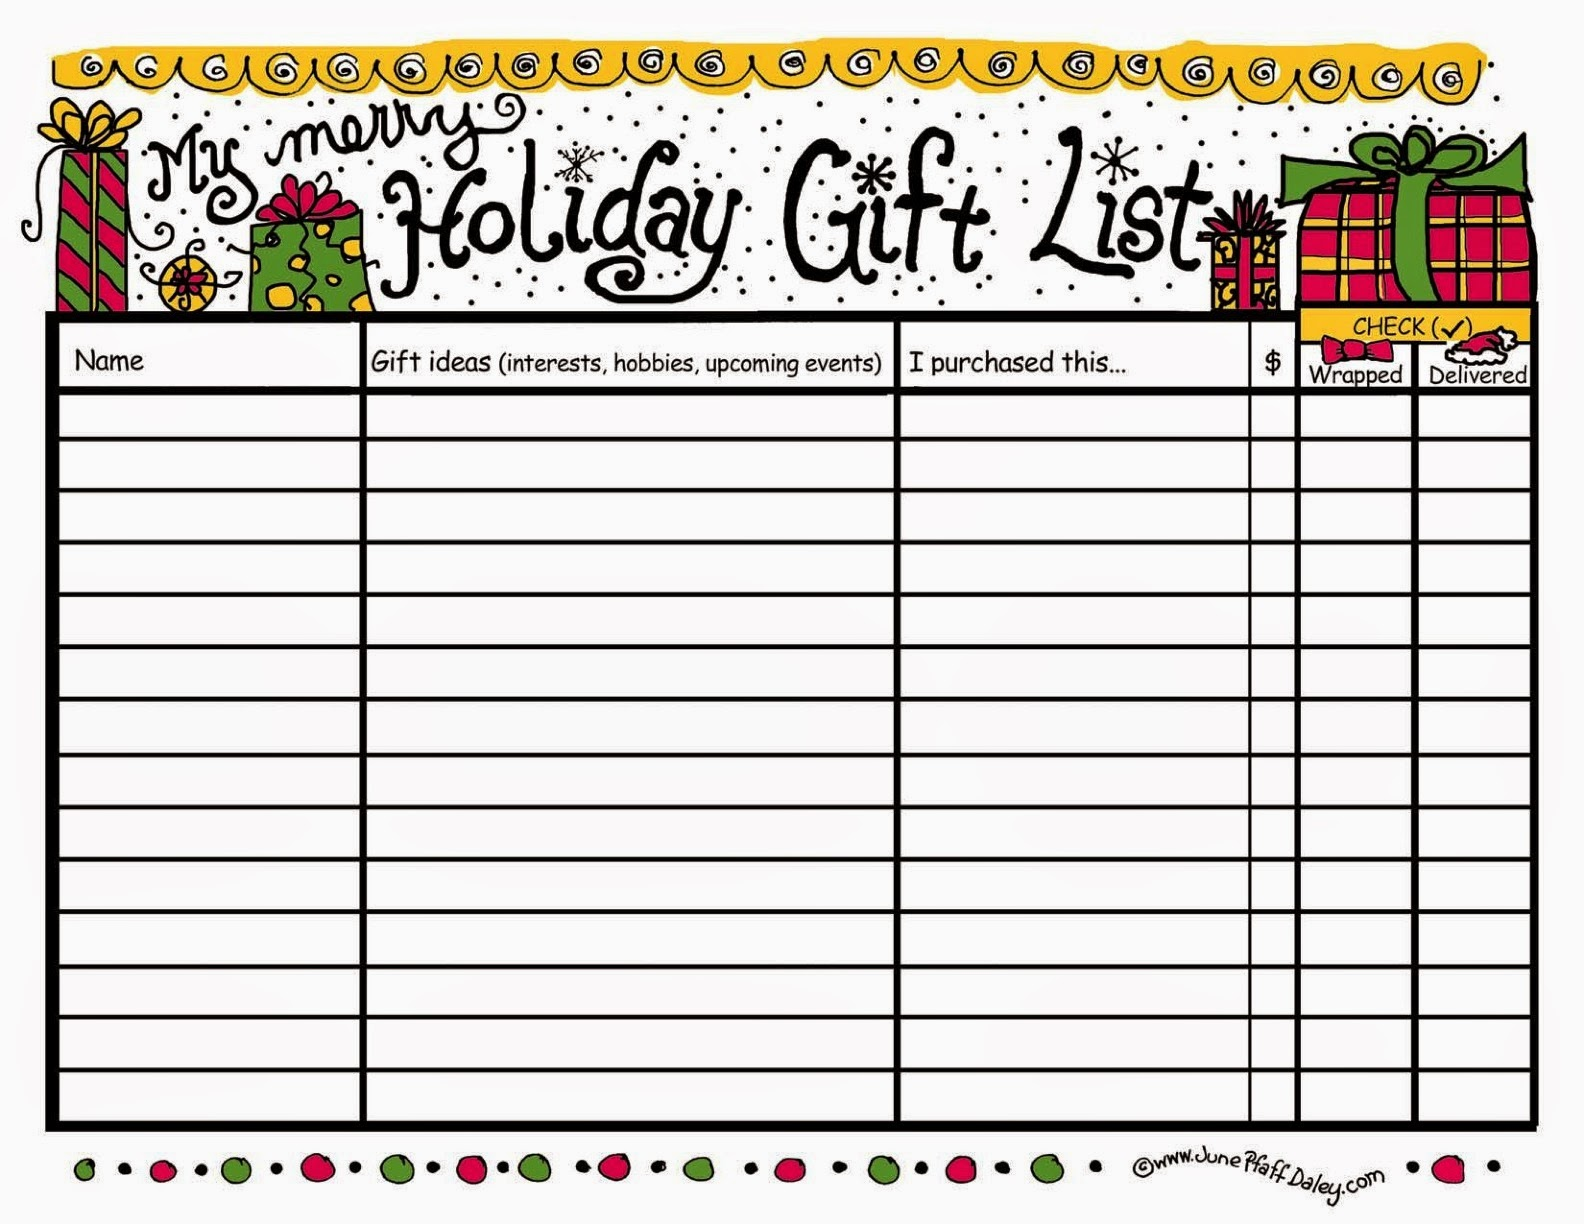 confessions of a holiday junkie christmas in july day 5 gift list